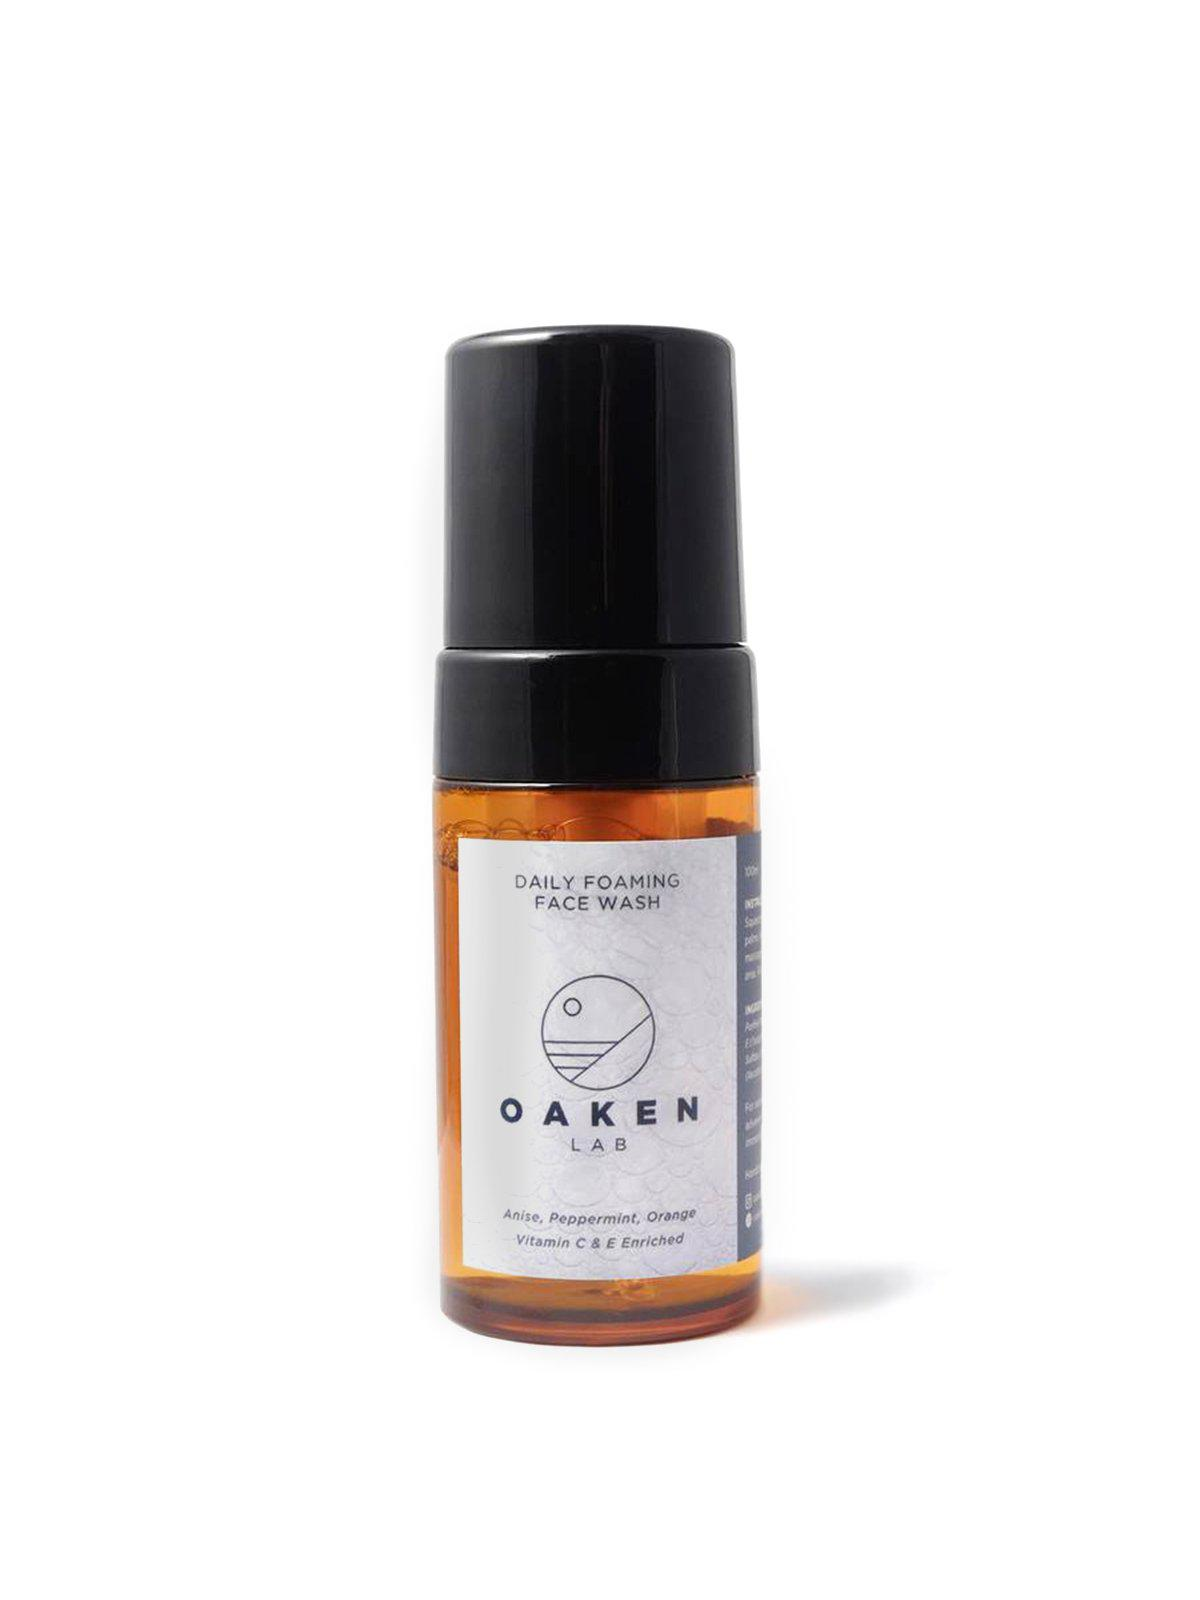 Oaken Lab Daily Foaming Face Wash 100ml - MORE by Morello Indonesia